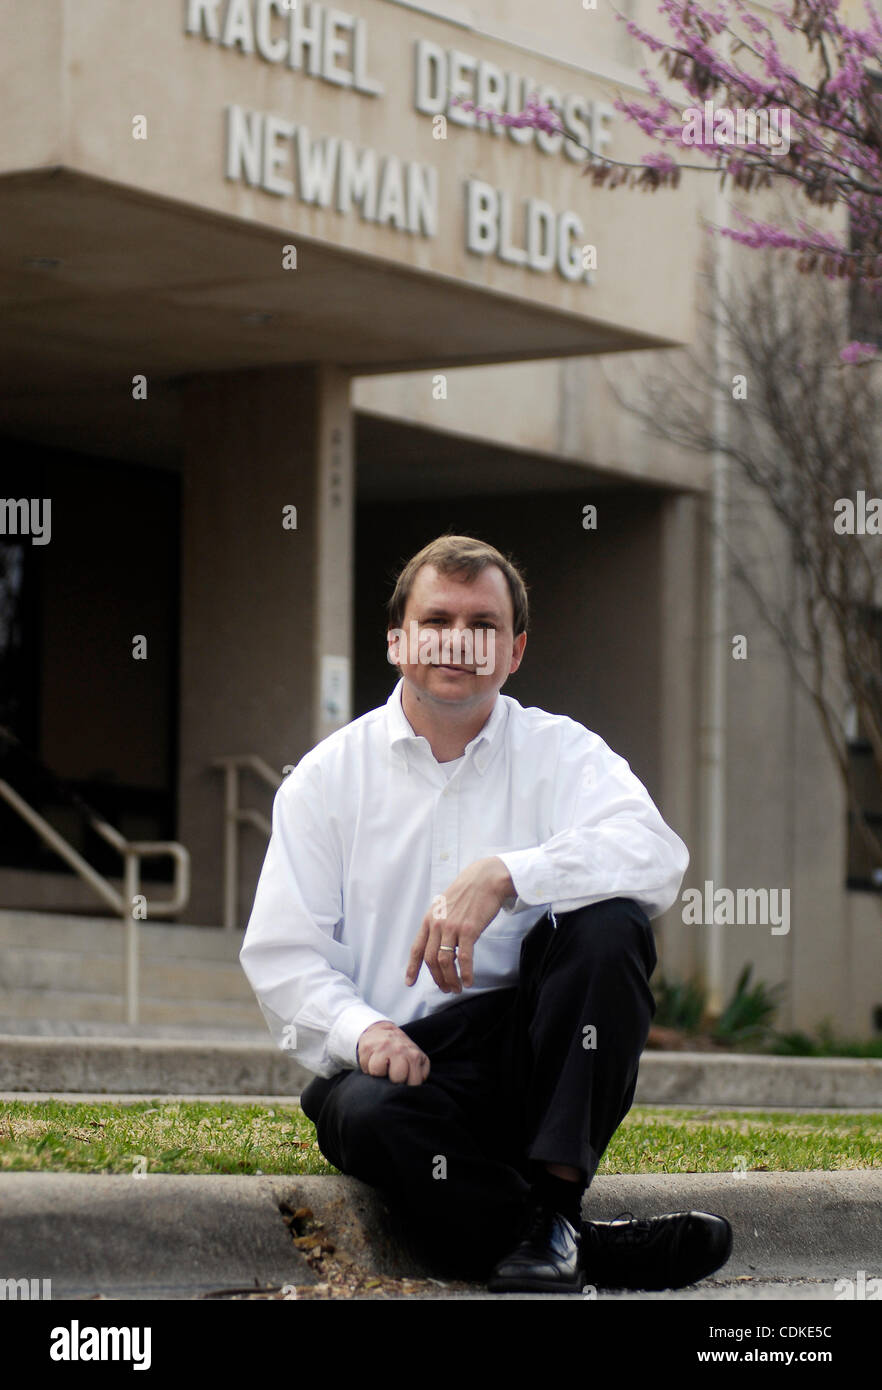 Mar. 17, 2011 - Weatherford, Texas, USA - 3/17/2011. JASON  C.N. SMITH sits in front of the Daggett Montesorri school - Stock Image